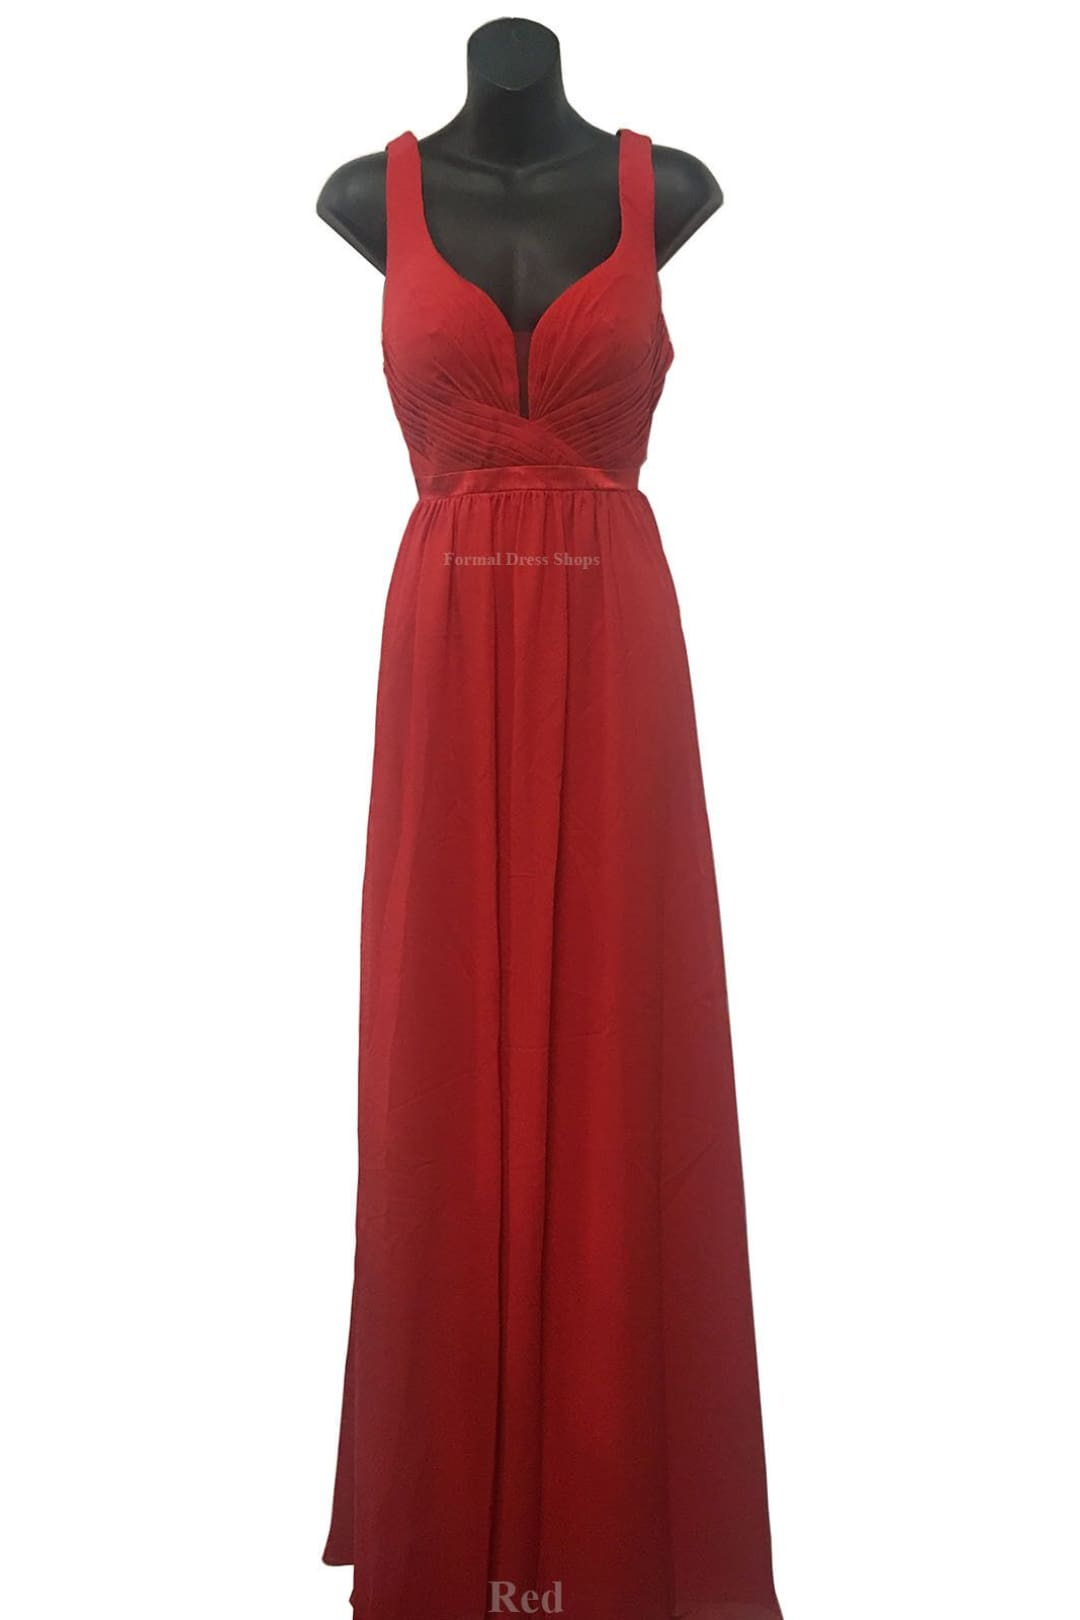 Classy V Neck Formal Gown - Red / 4